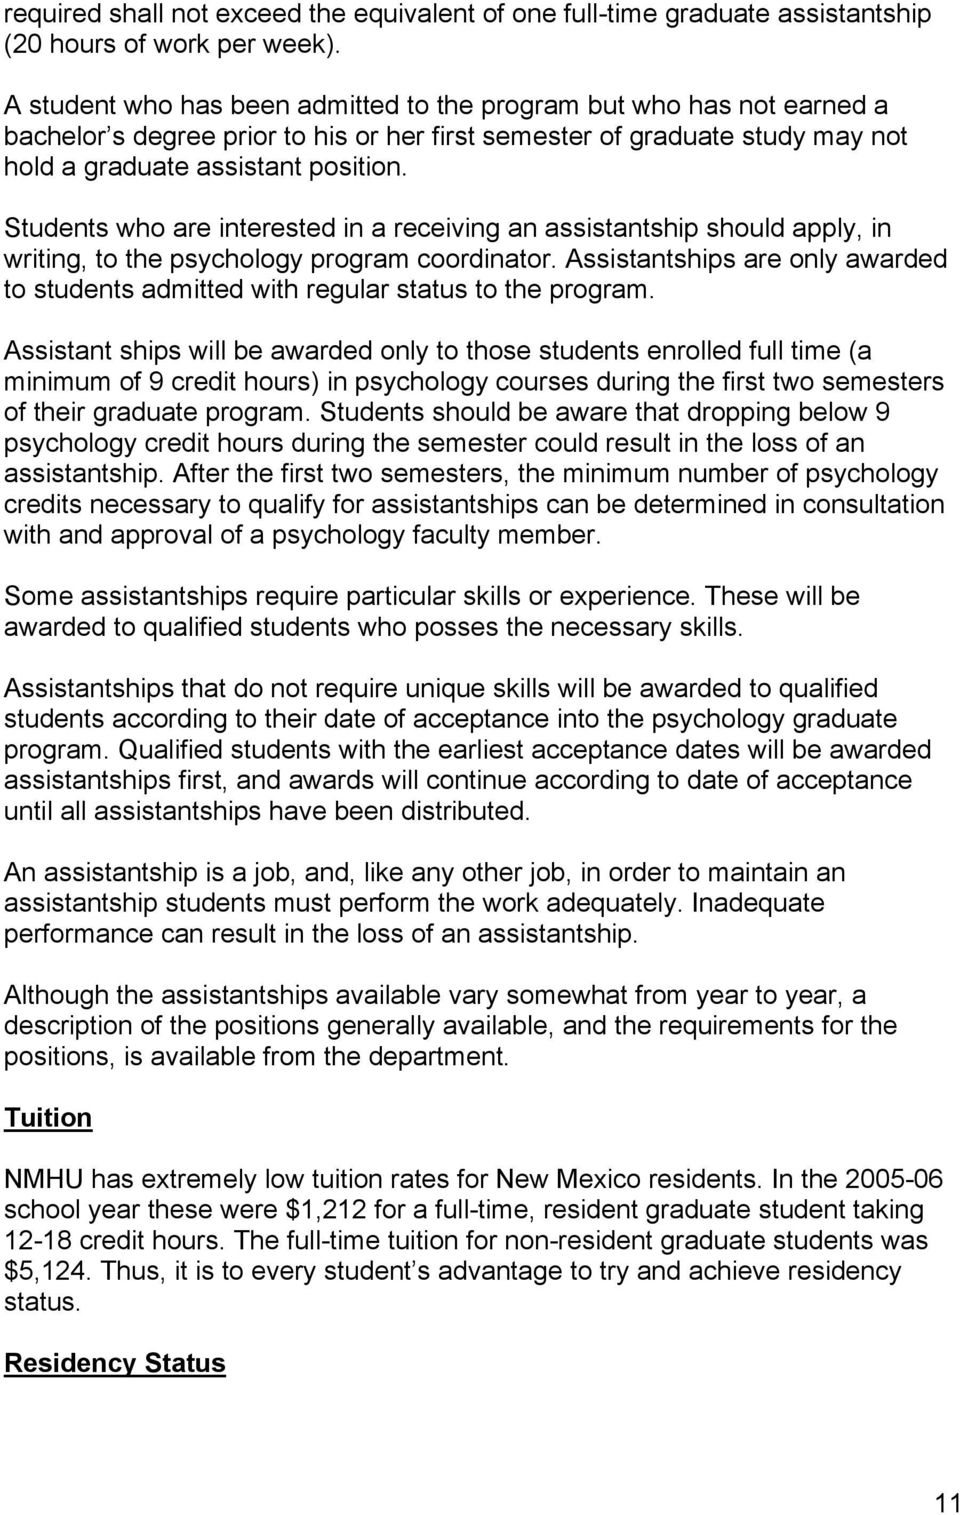 Students who are interested in a receiving an assistantship should apply, in writing, to the psychology program coordinator.